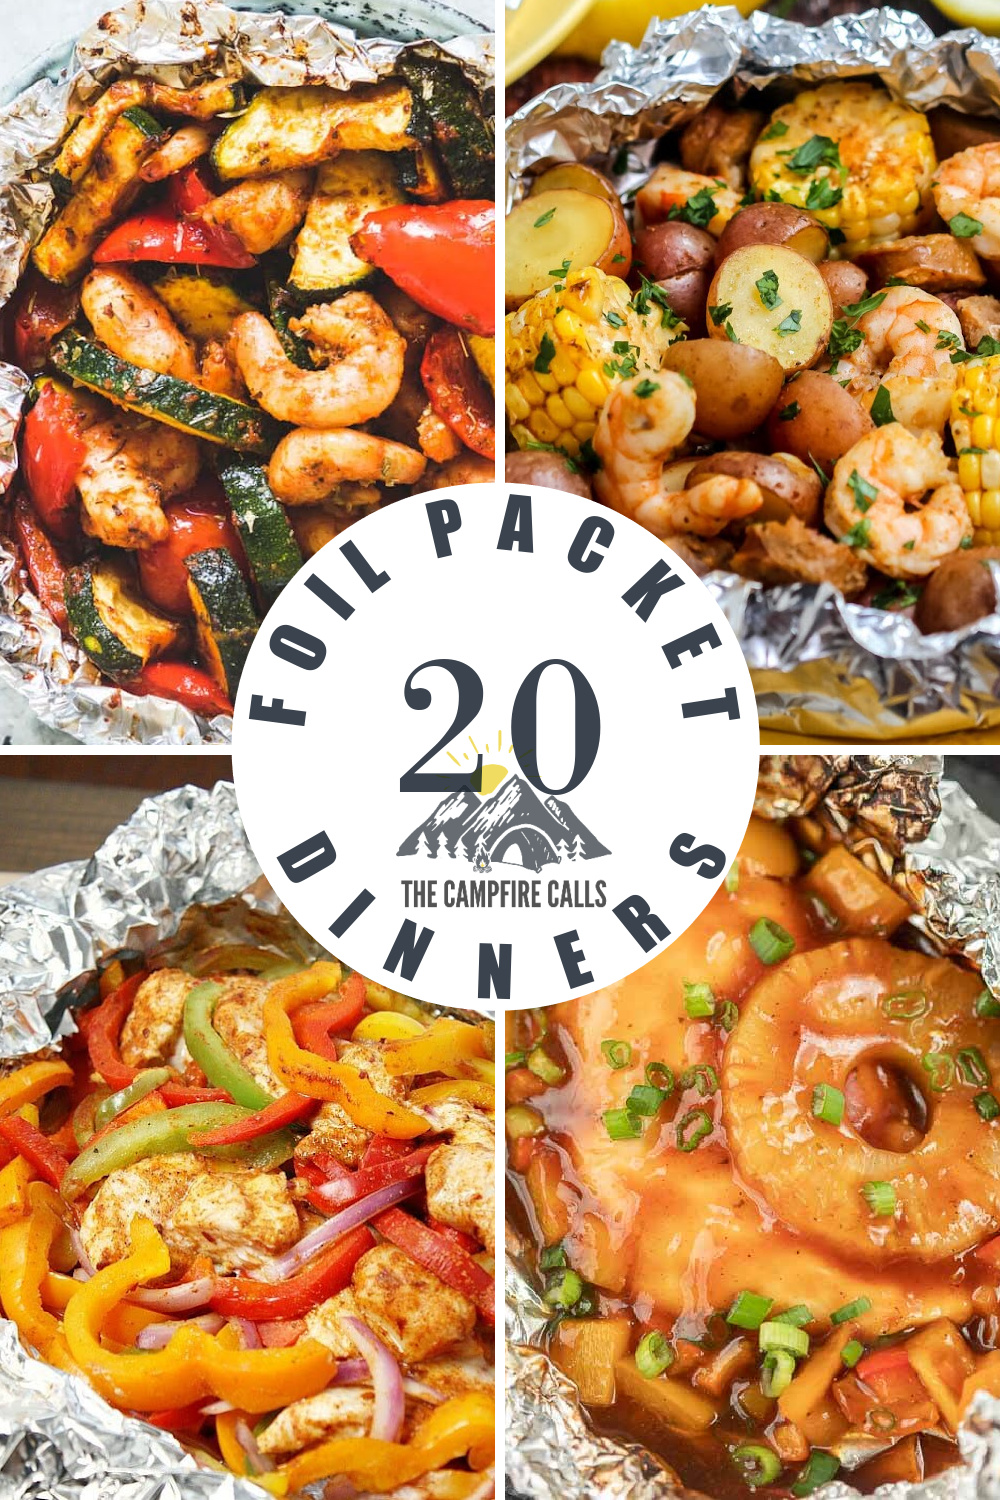 Looking for a fun and easy way to cook while camping? Try Campfire Foil Packet Dinners! Here are 25 recipes just waiting for you to try.